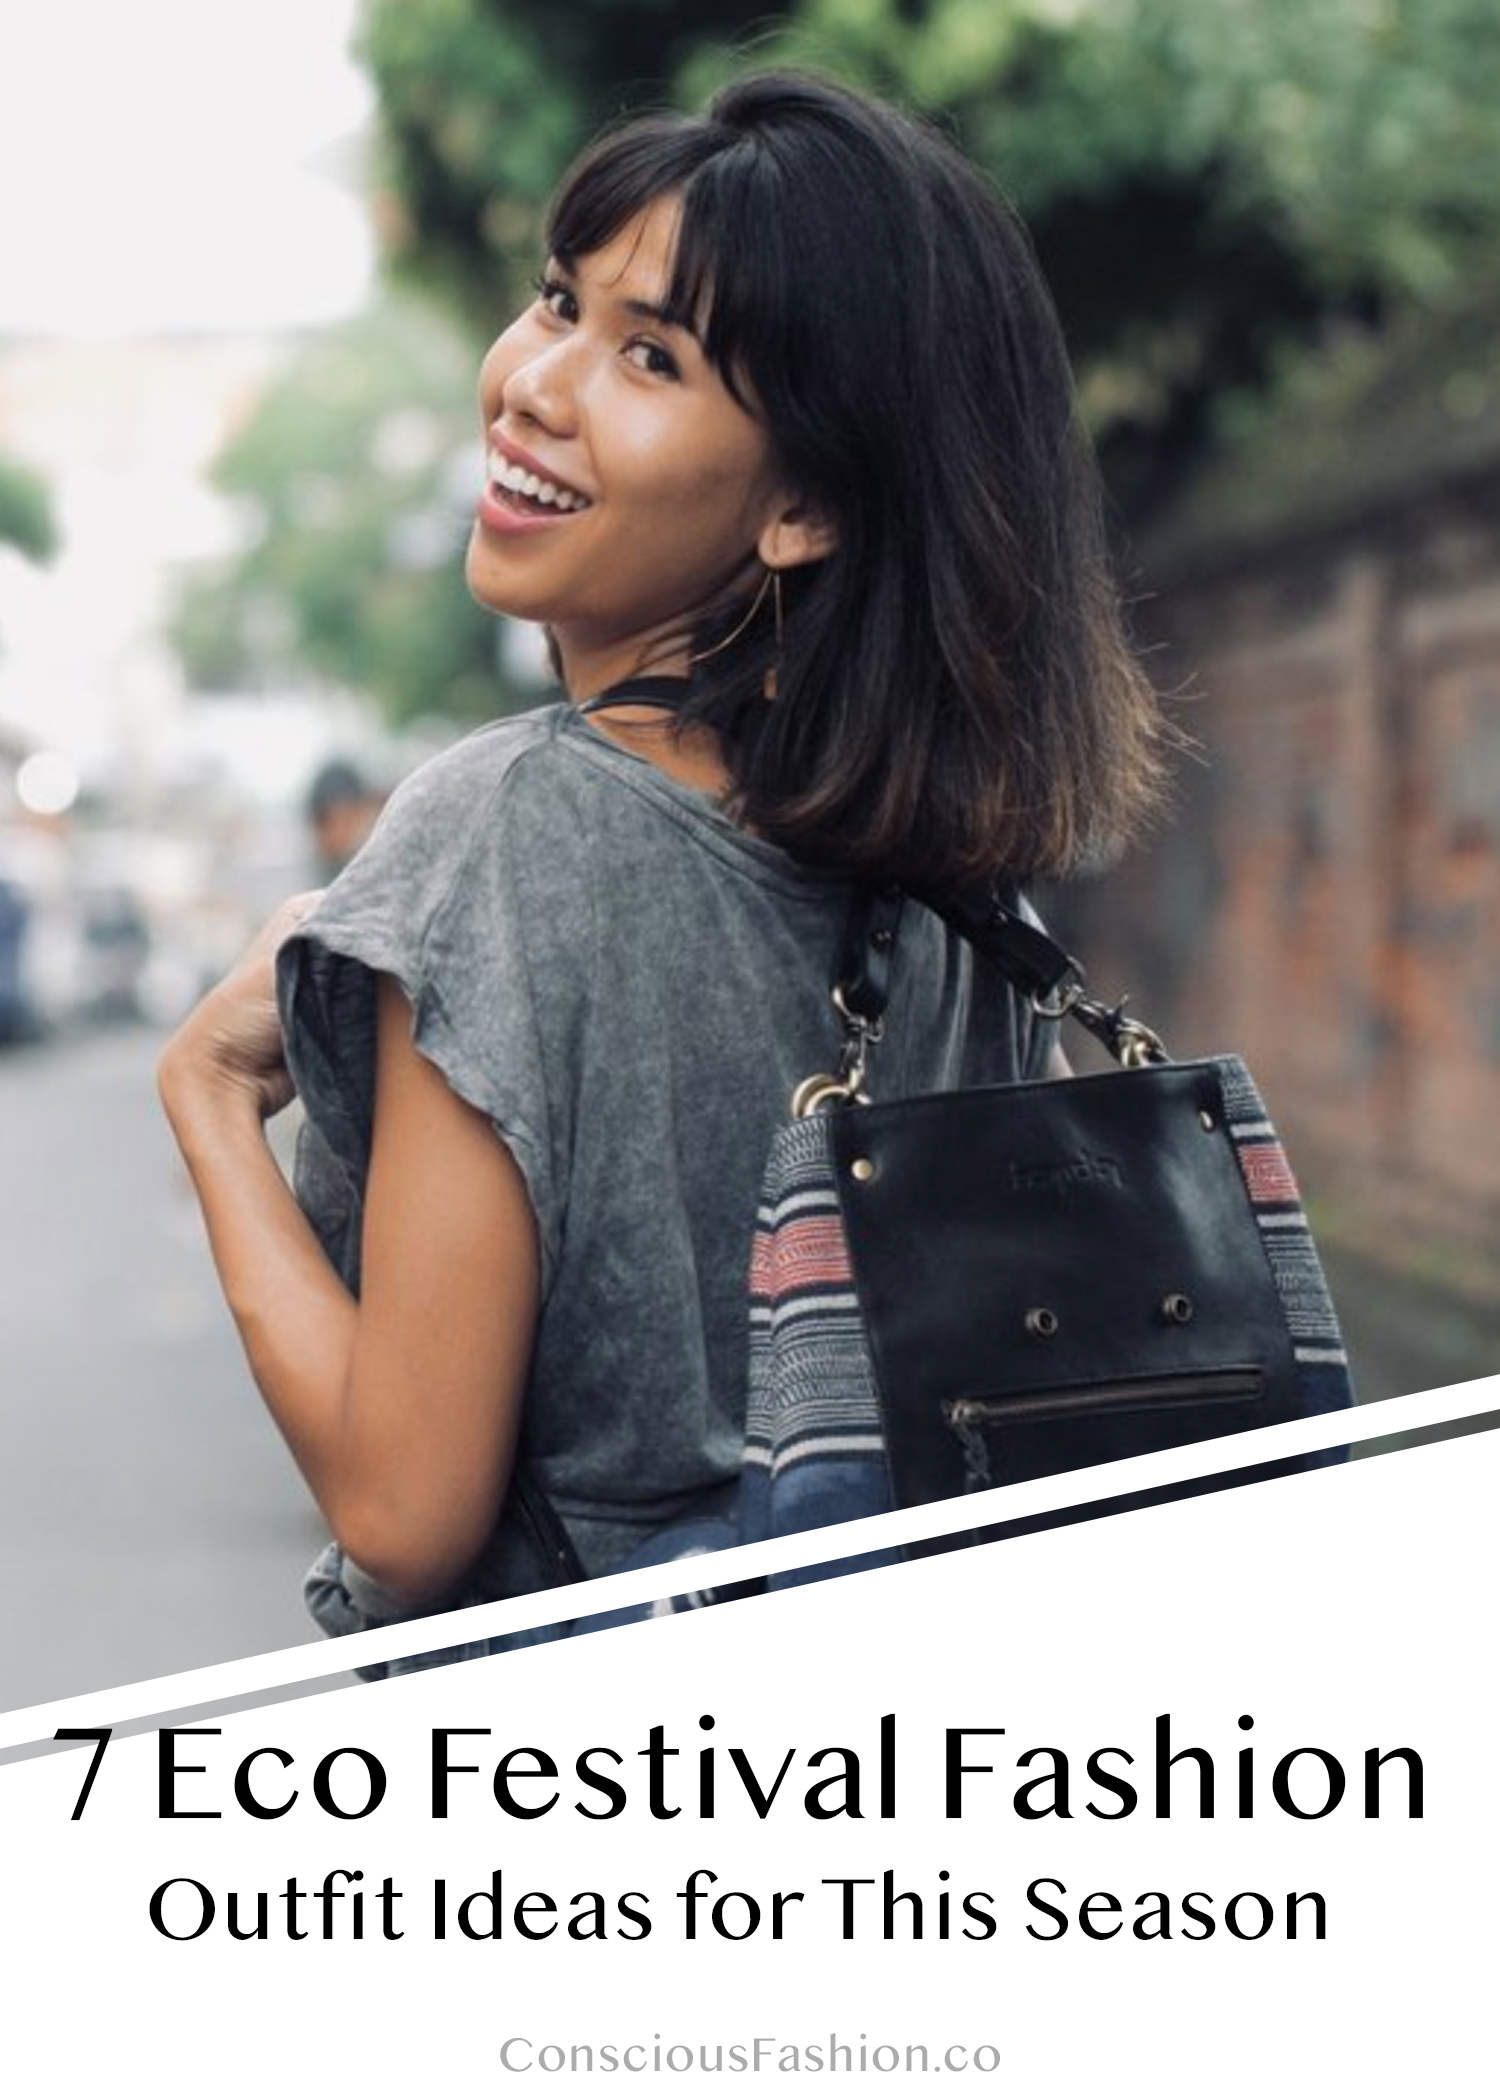 Eco Festival Fashion Outfit Ideas by Conscious Fashion Collective